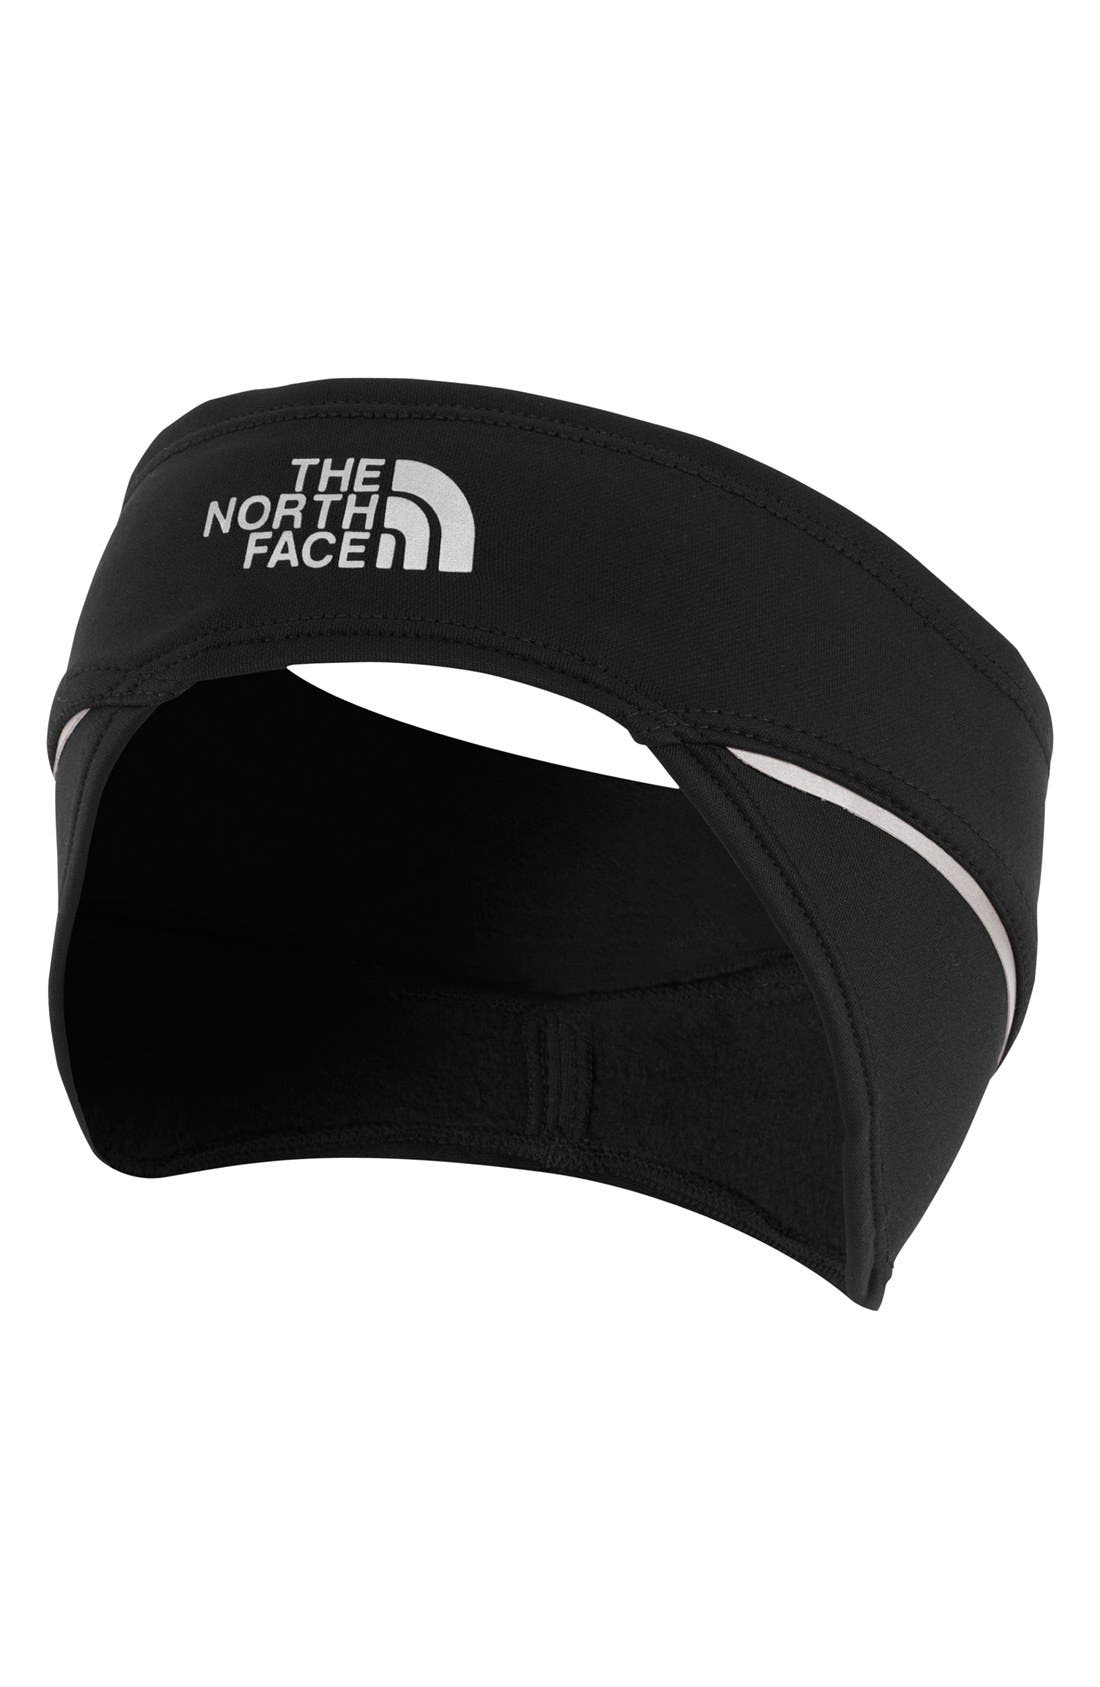 Alternate Image 1 Selected - The North Face 'Momentum' Ear Band